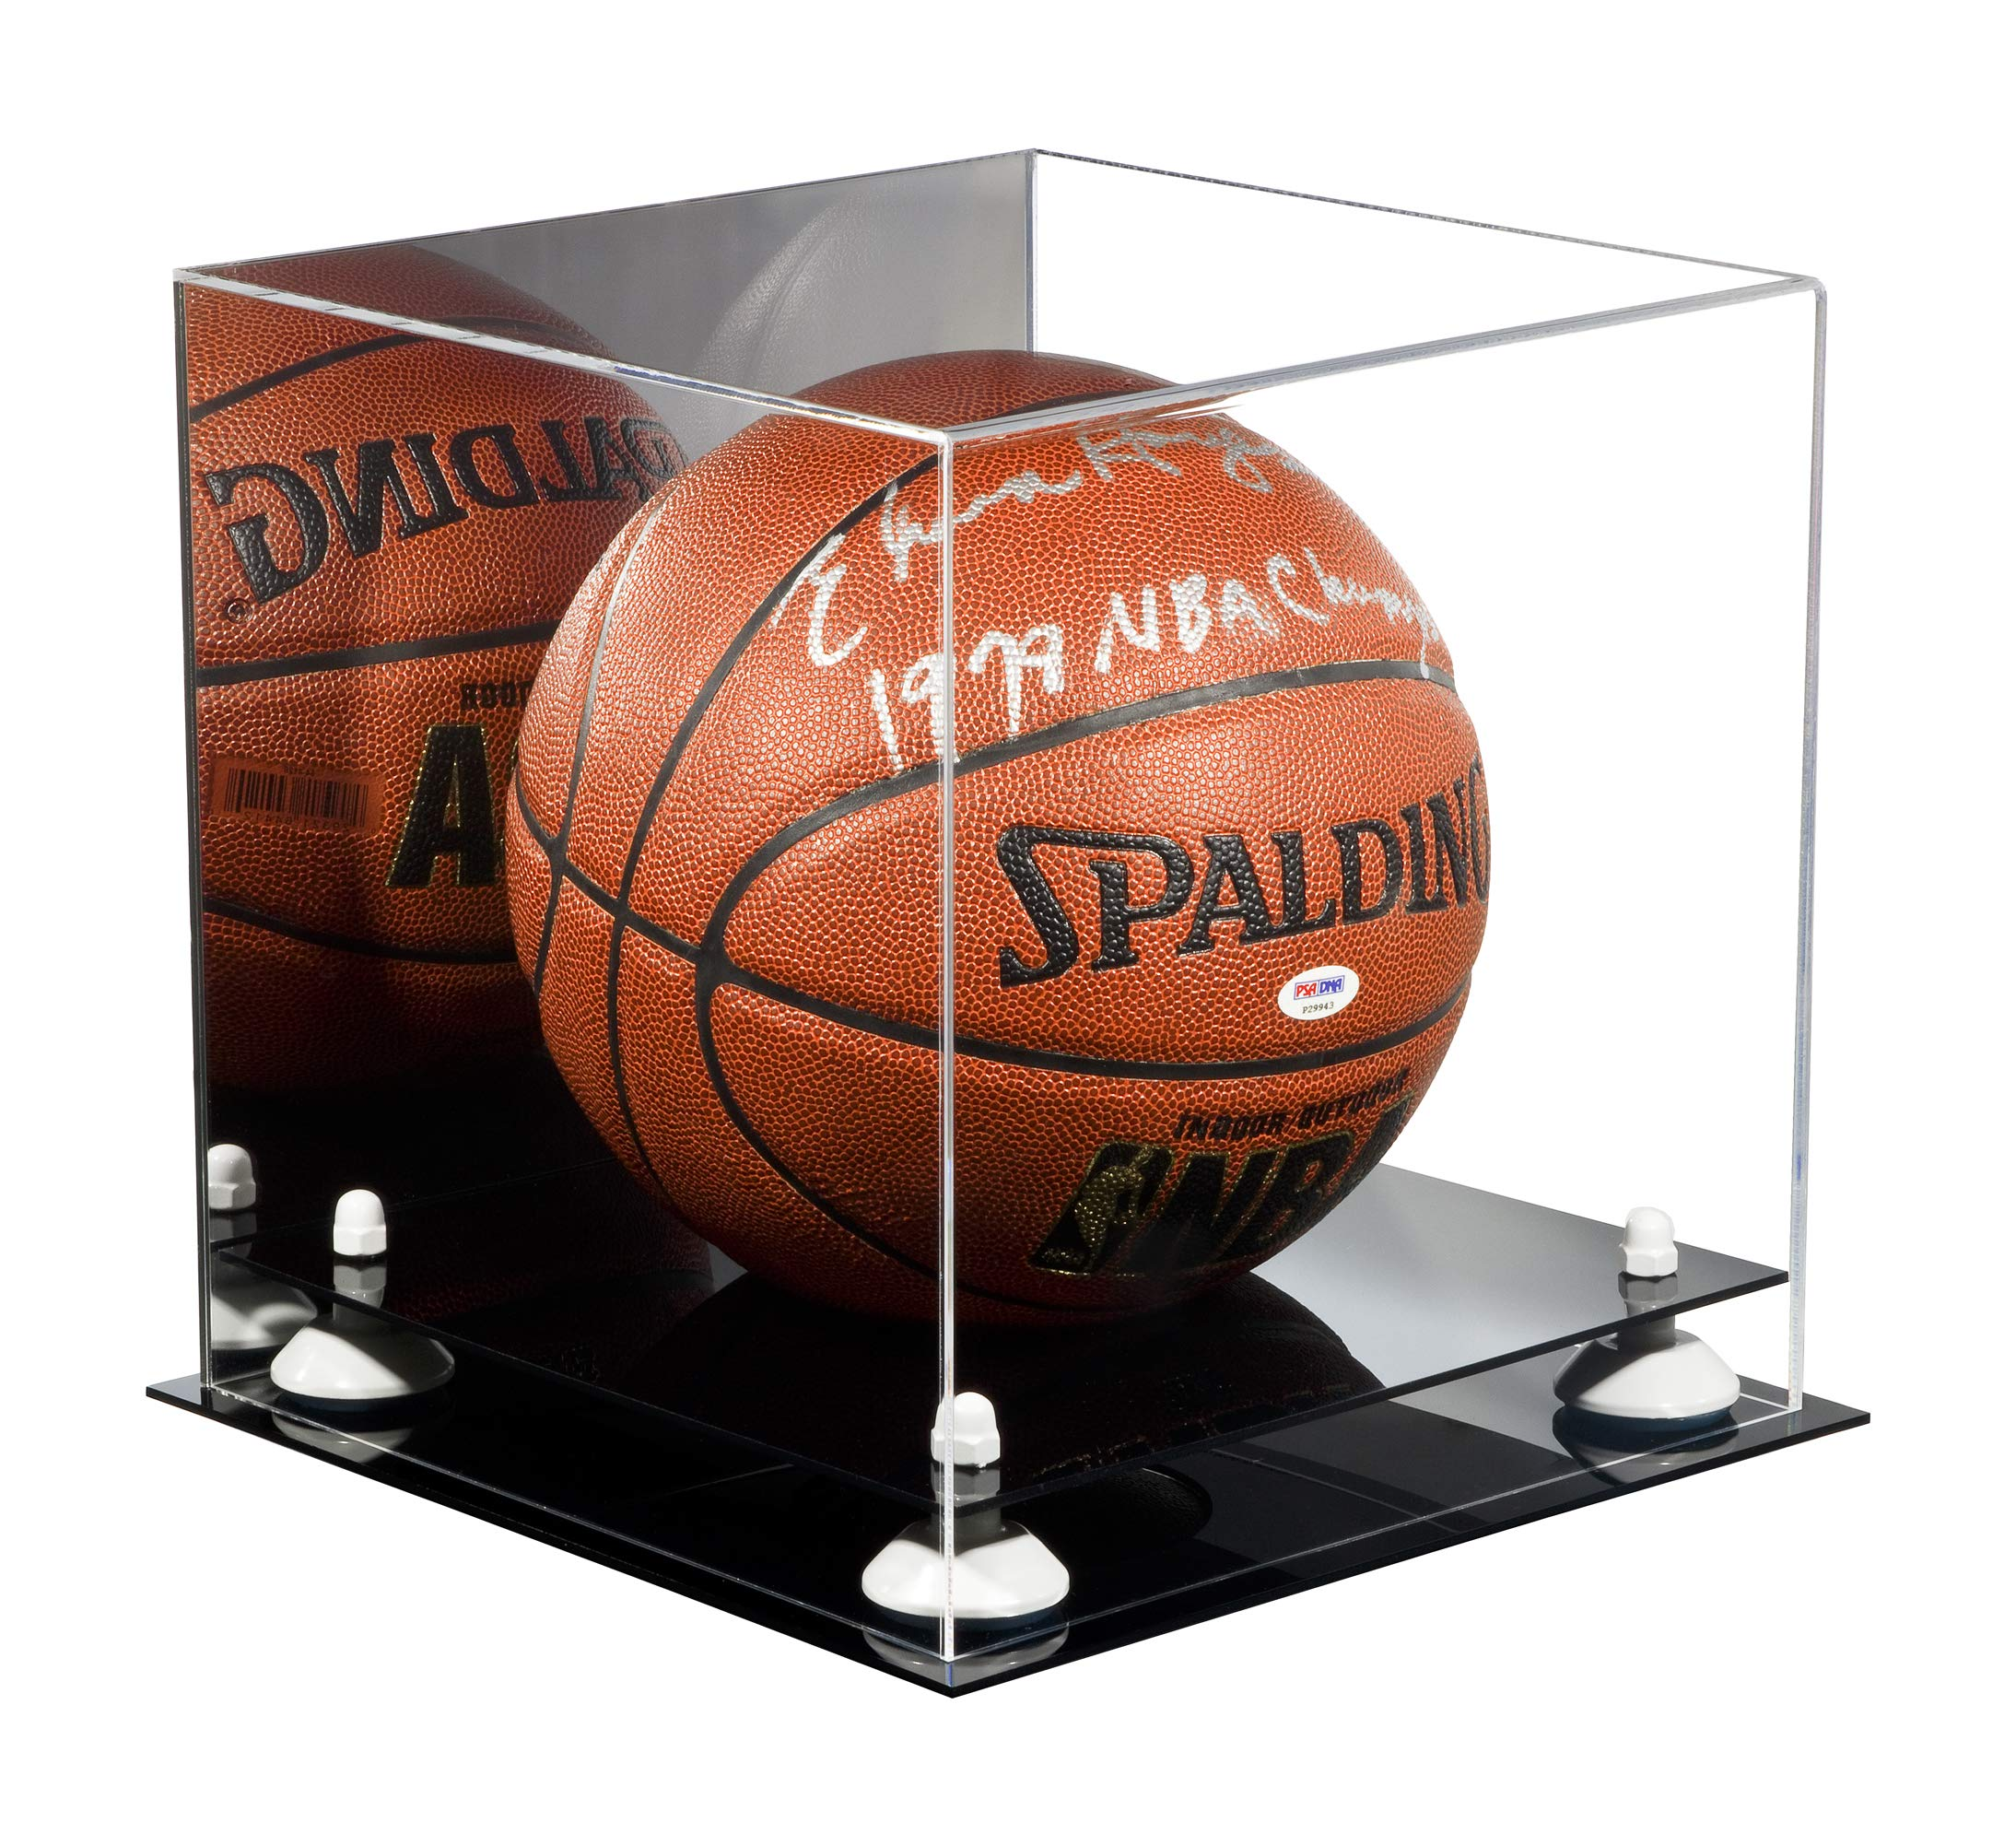 Deluxe Acrylic Basketball Display Case with White Risers and Mirror (A001-WR) by Better Display Cases